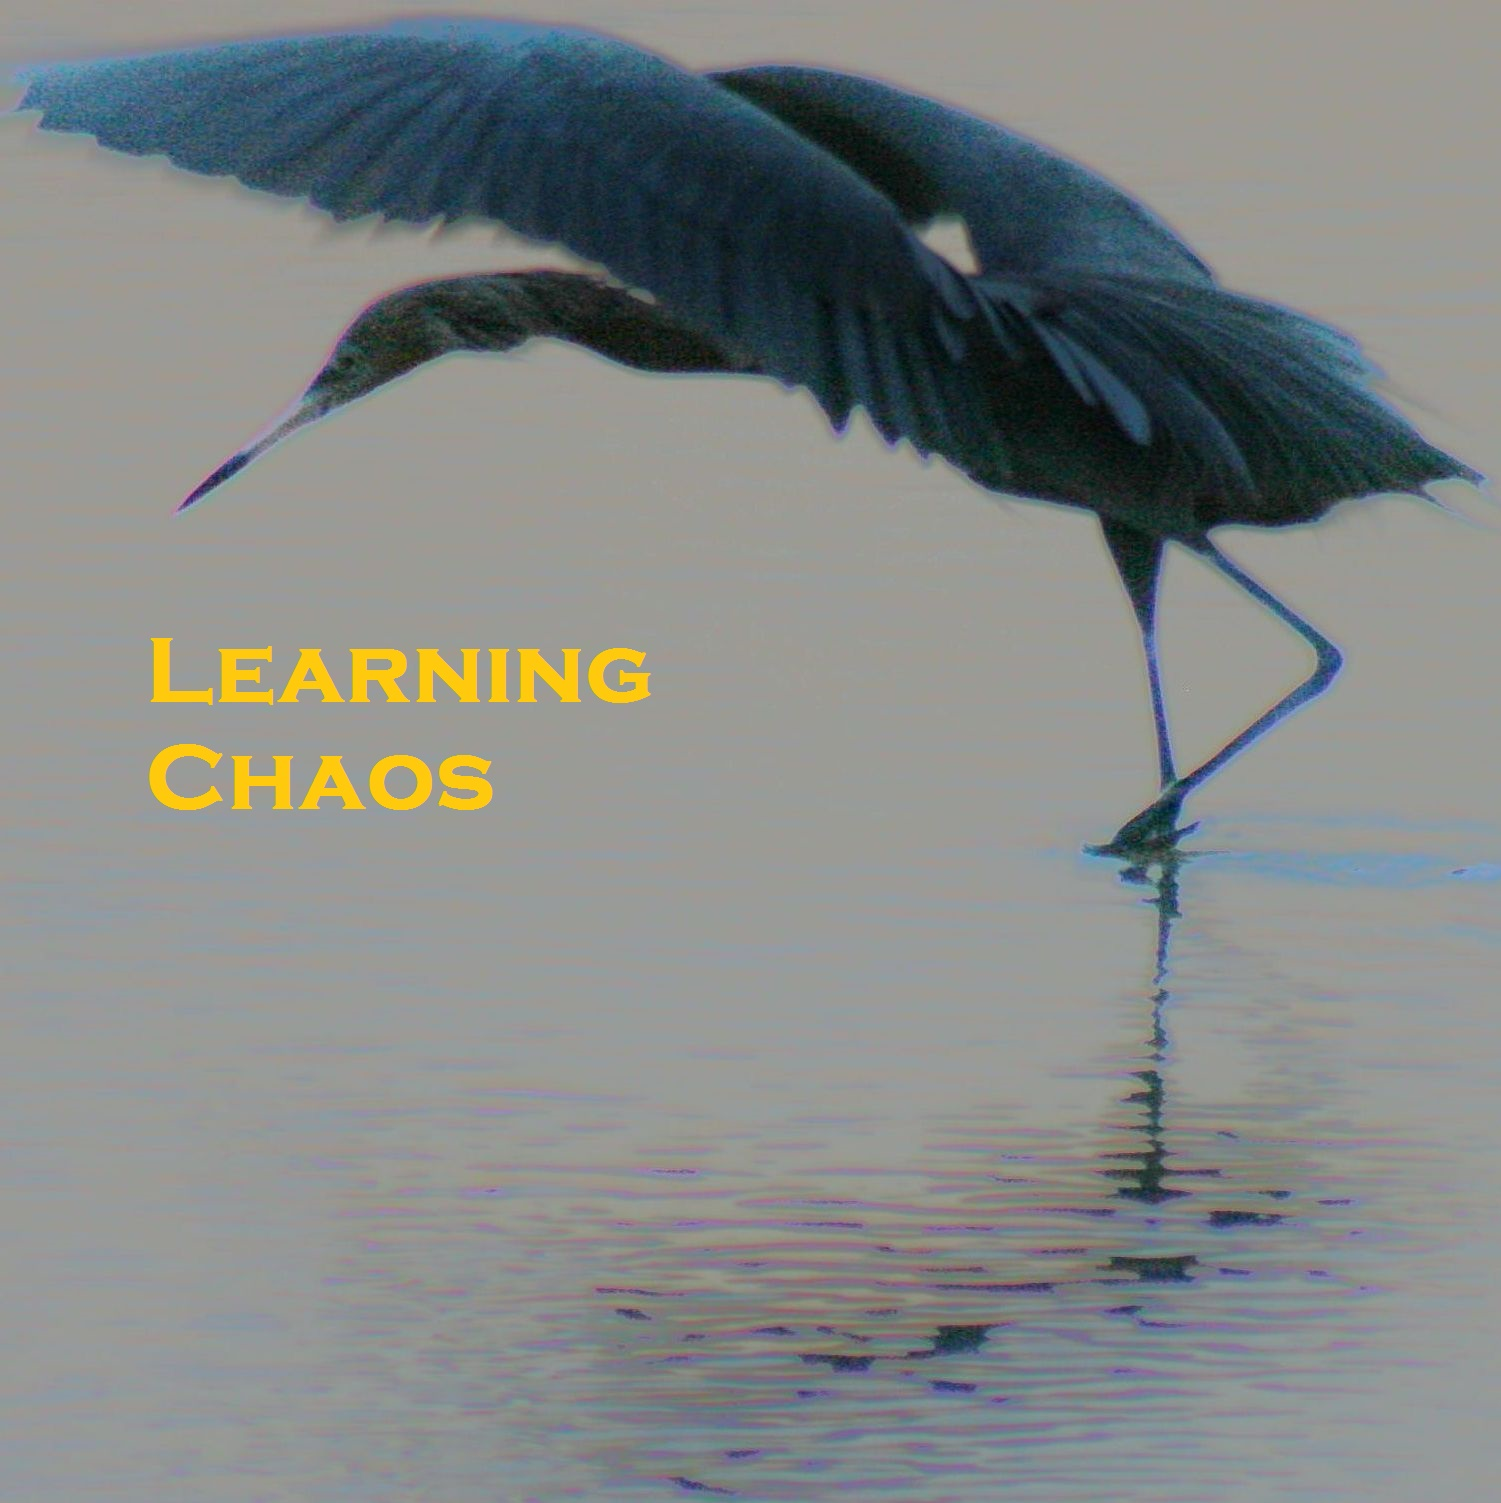 Learning Chaos